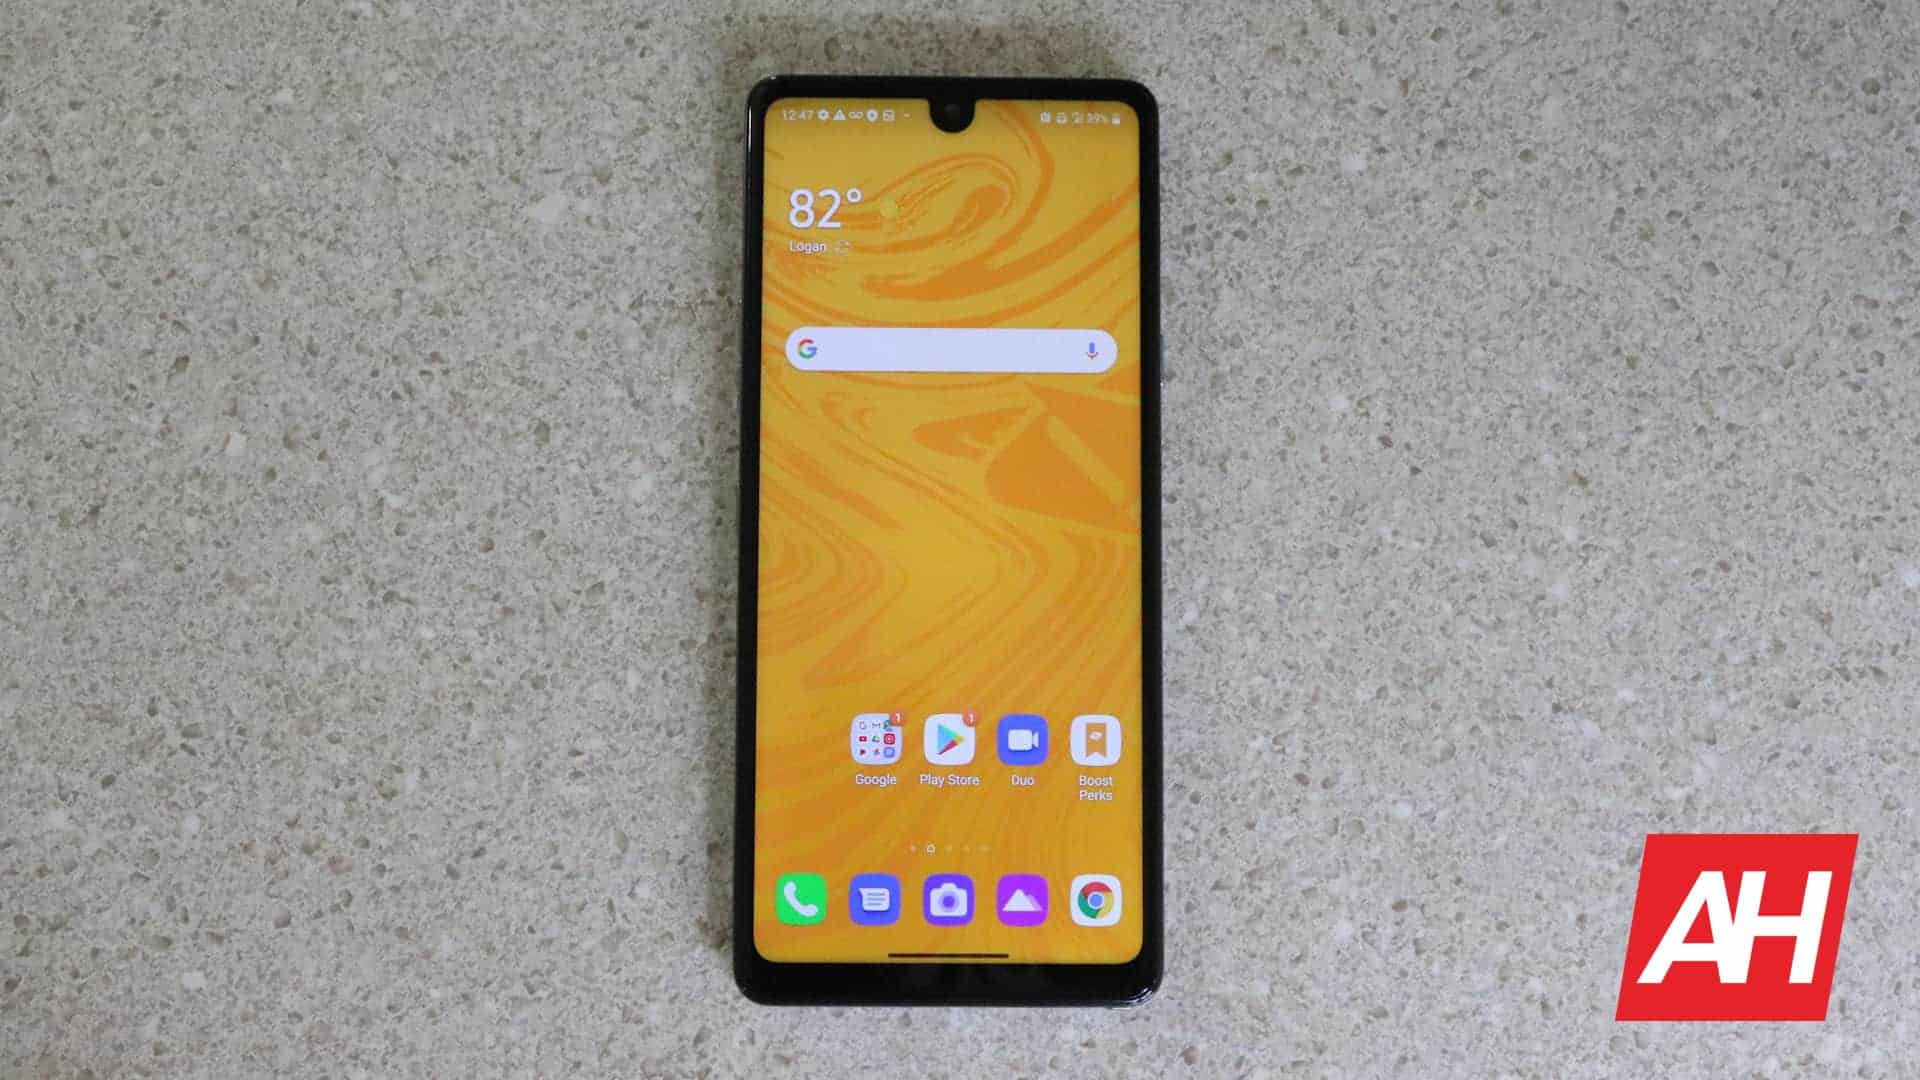 03 3 Hardware LG Stylo 6 Review AH 2020